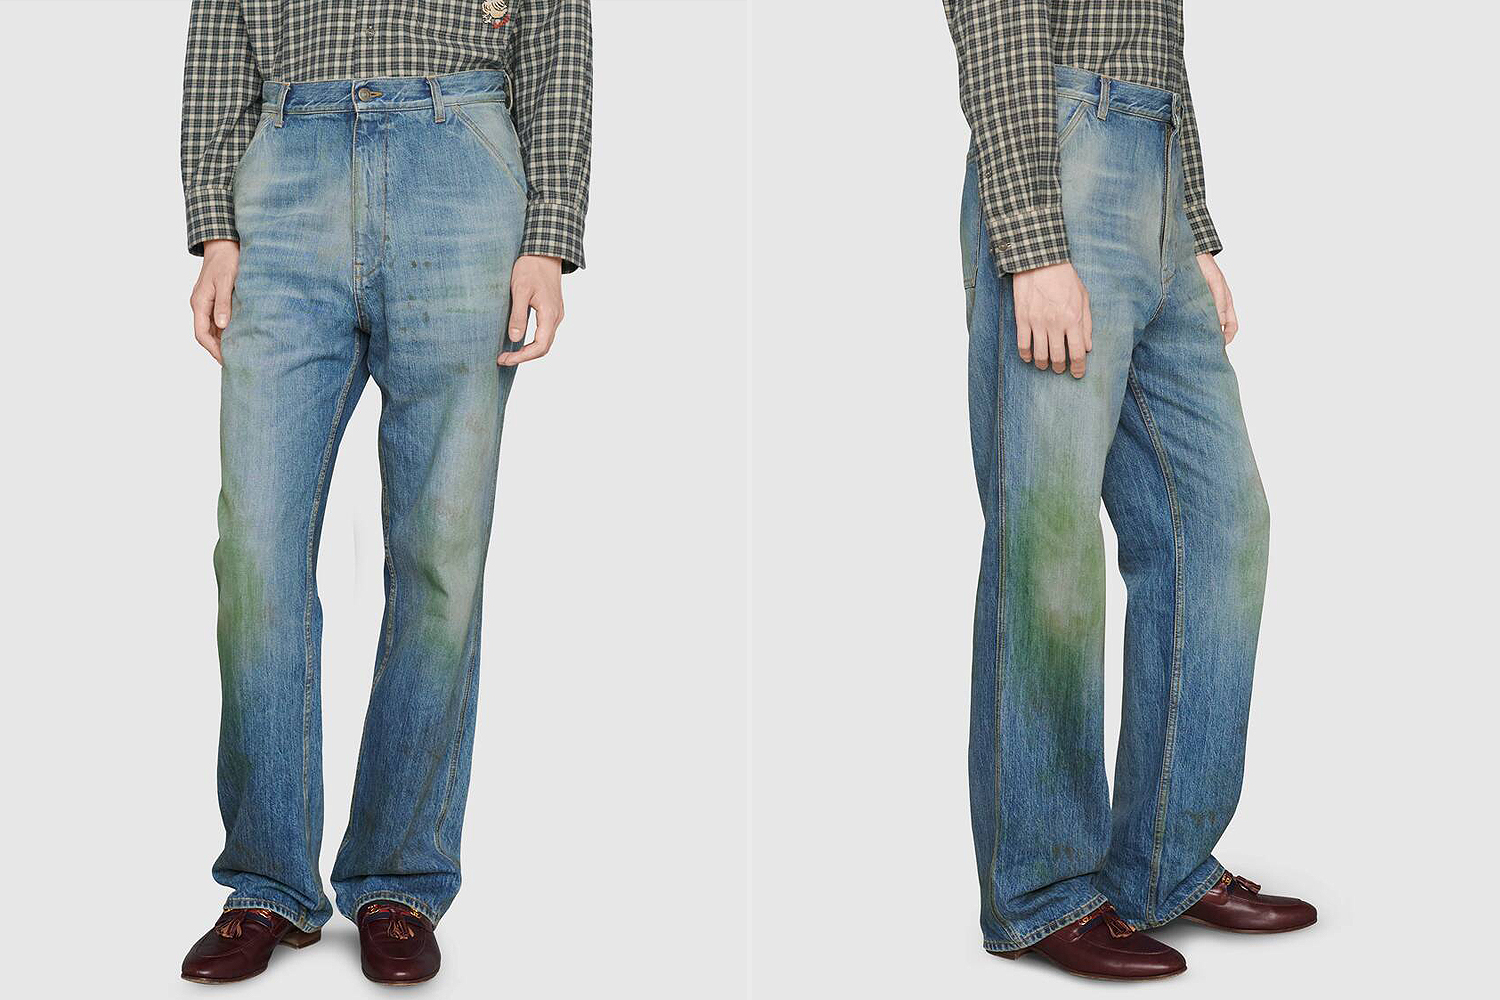 Gucci grass stain jeans